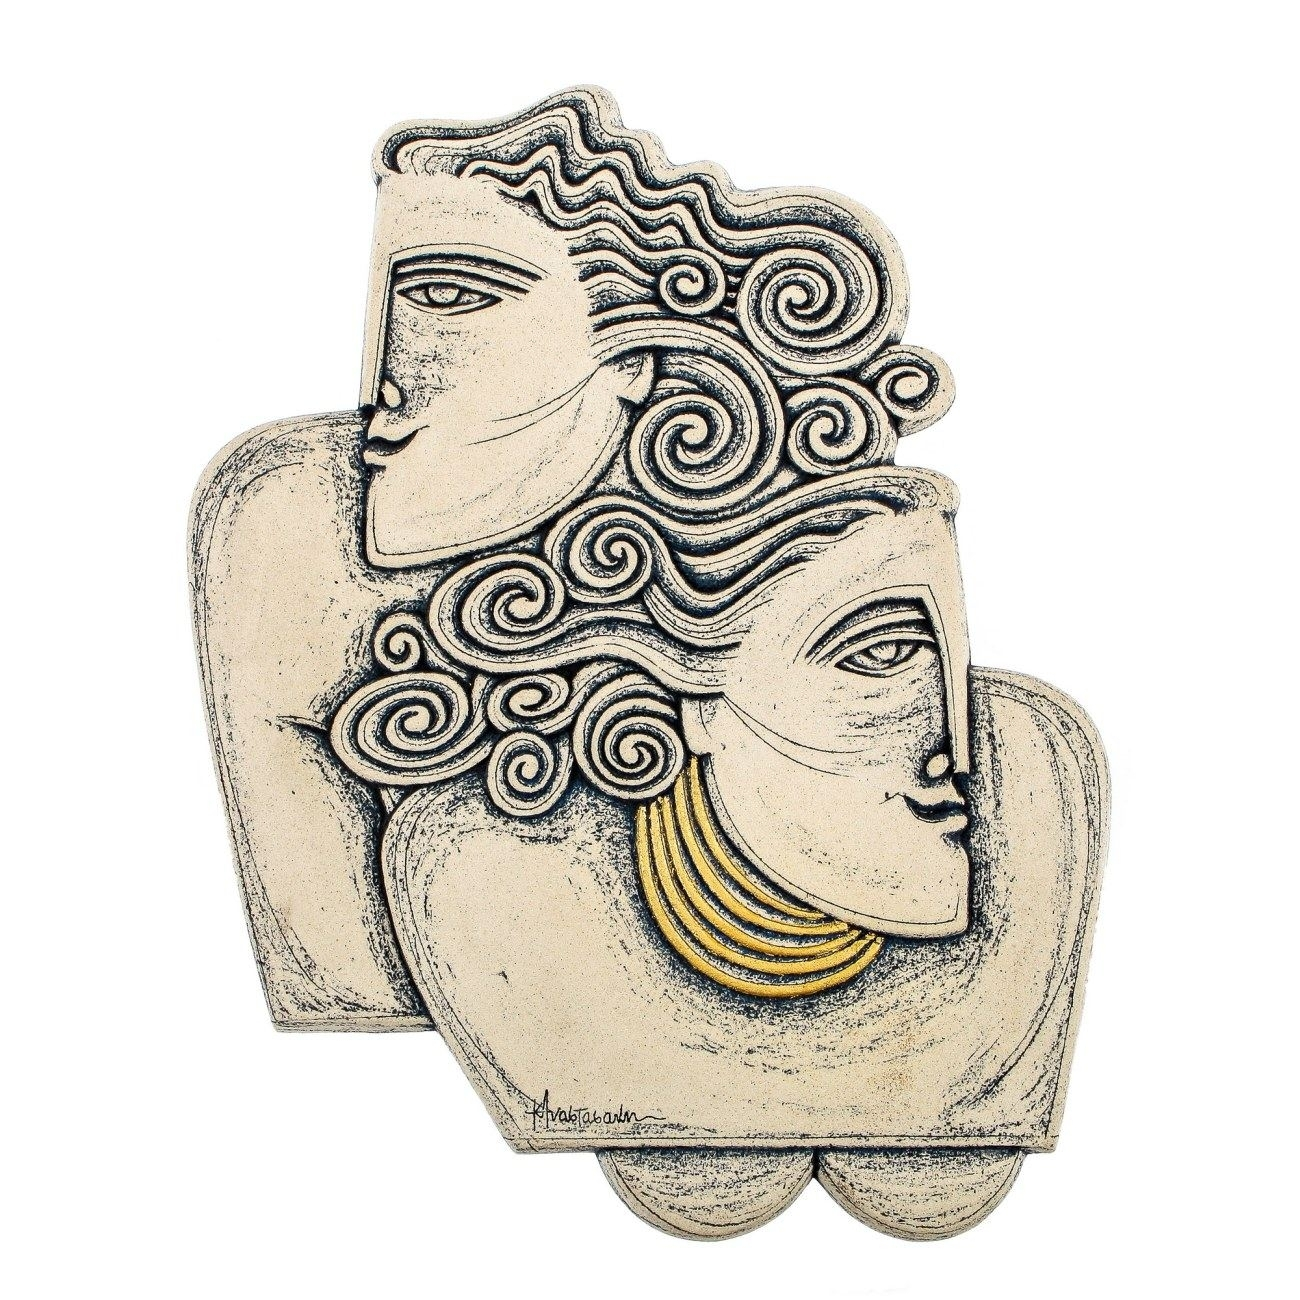 Couple Figurines Ceramic Handmade Sculpture Wall Art Decor – Archaic Throughout Most Popular Ceramic Wall Art (View 10 of 20)